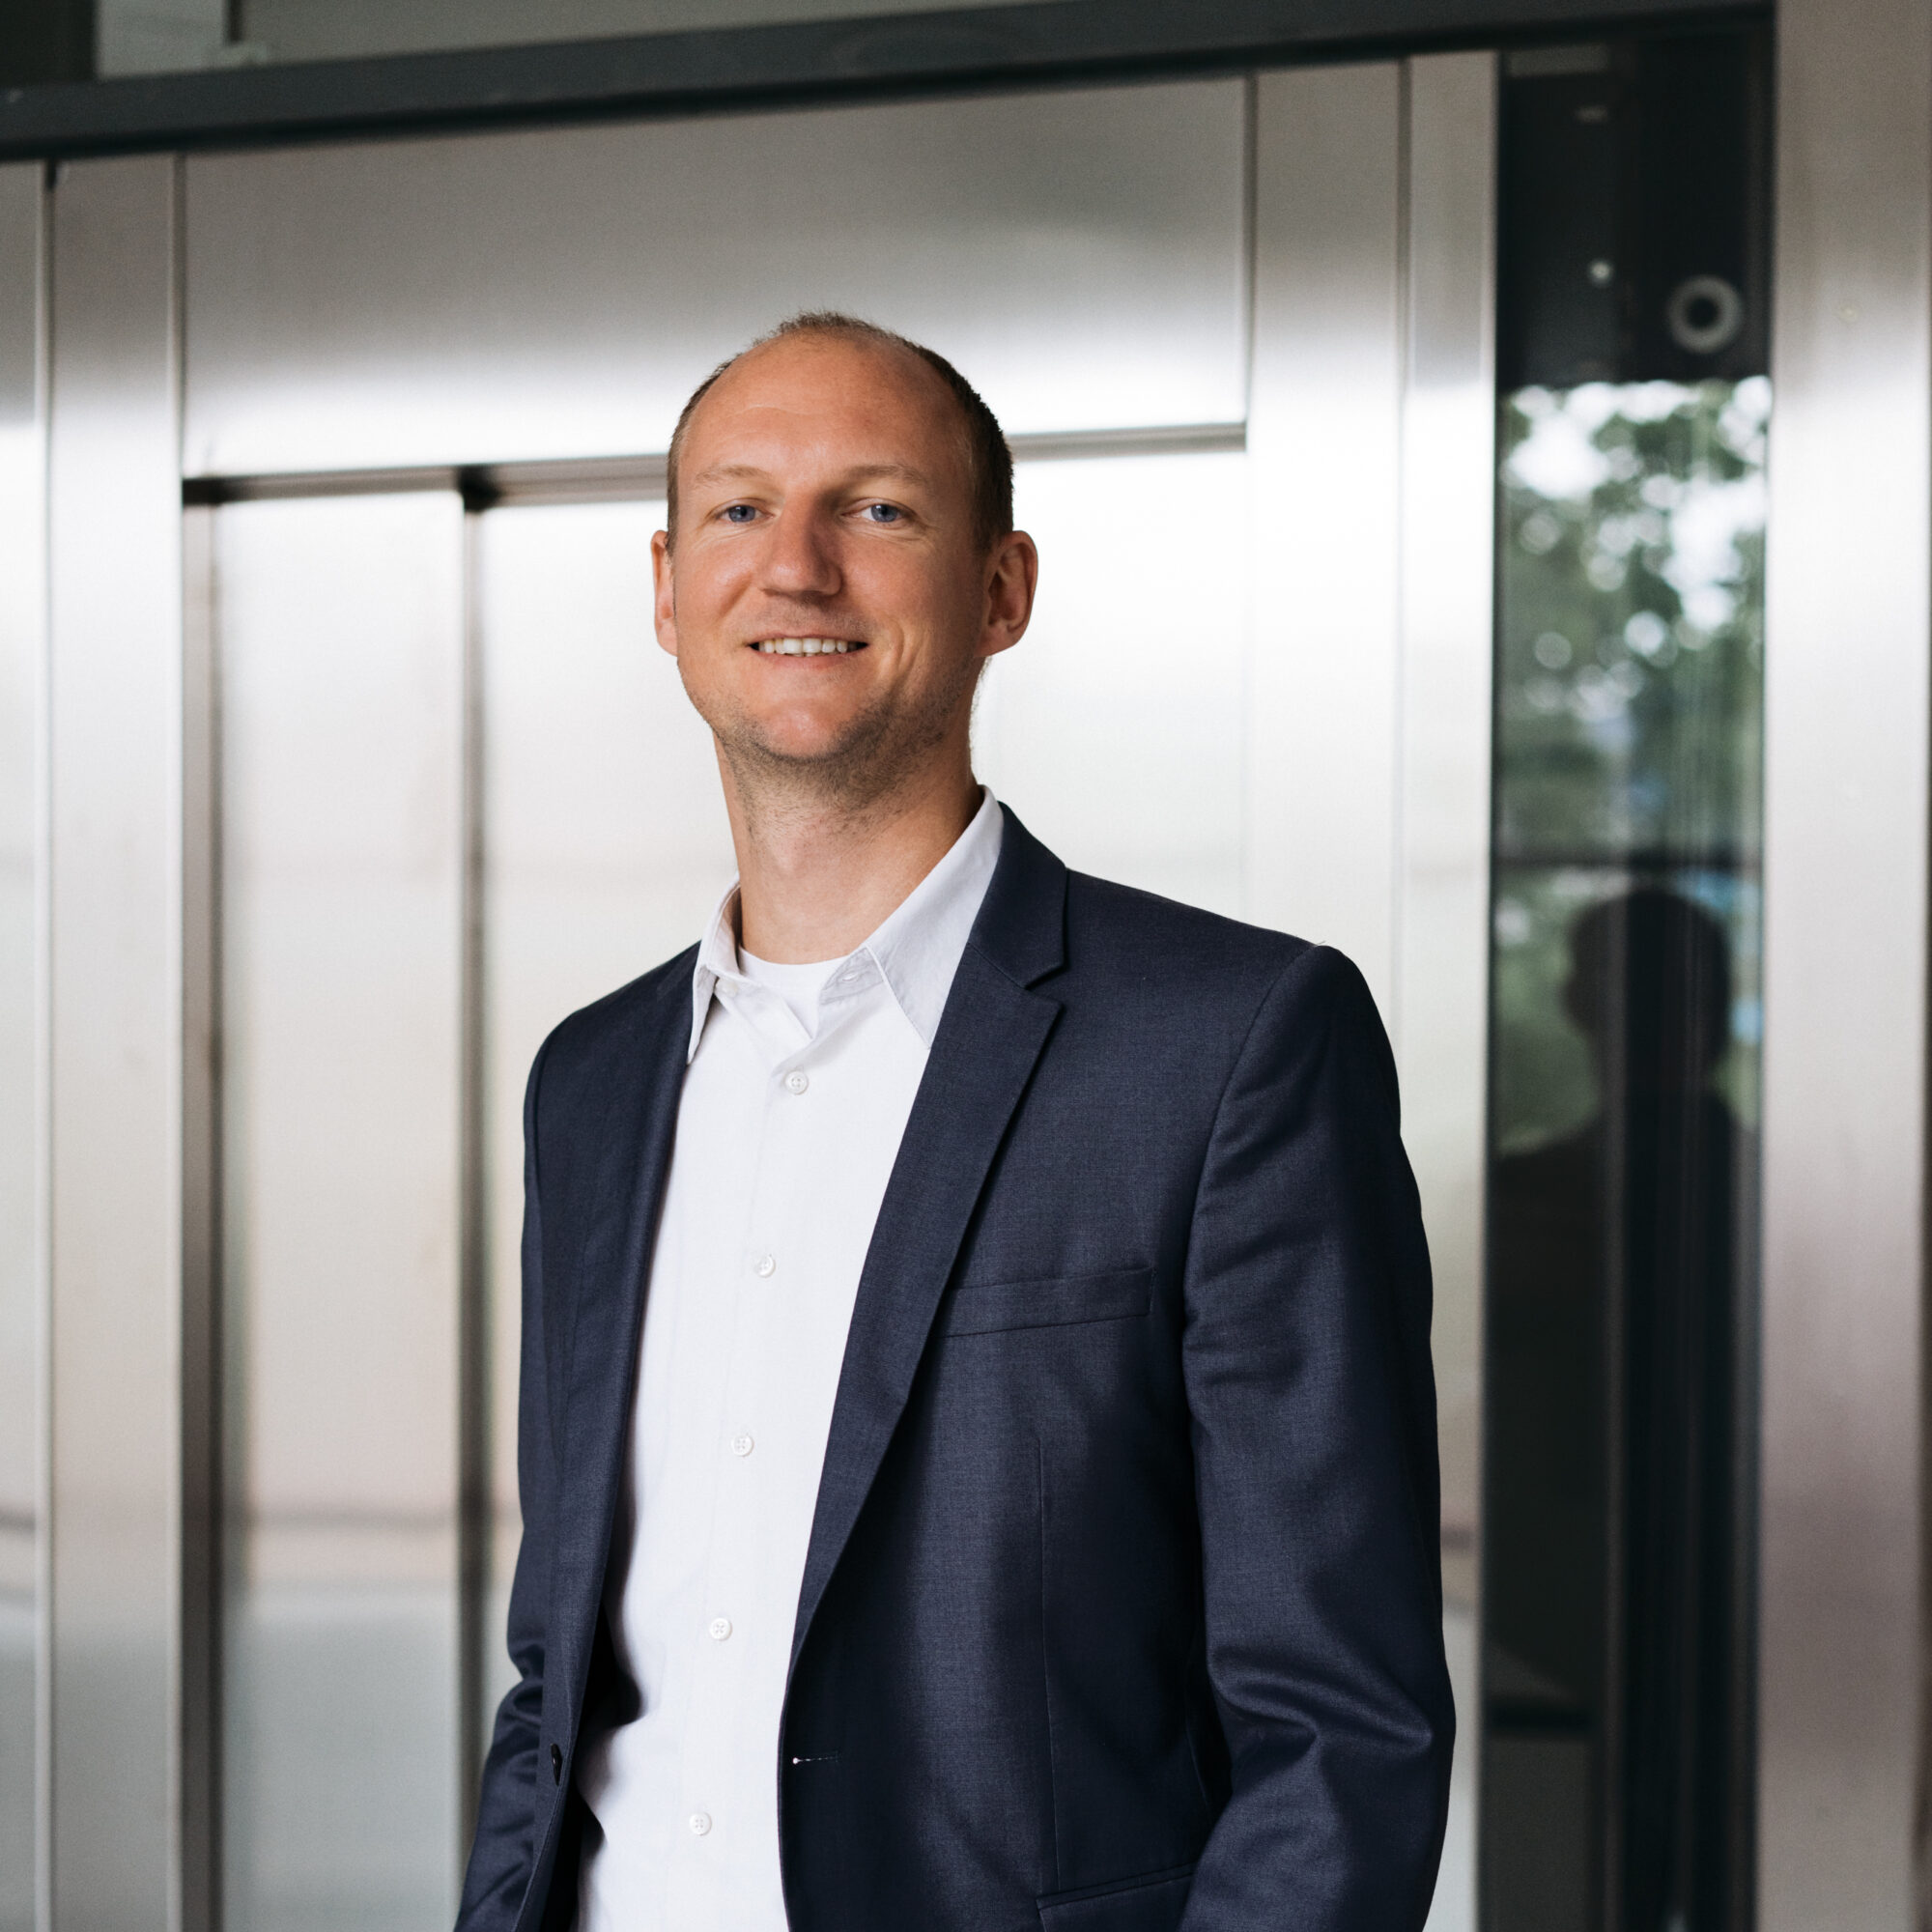 Christof Hieger, CTO, In-Vision Digital Imaging Optics GmbH